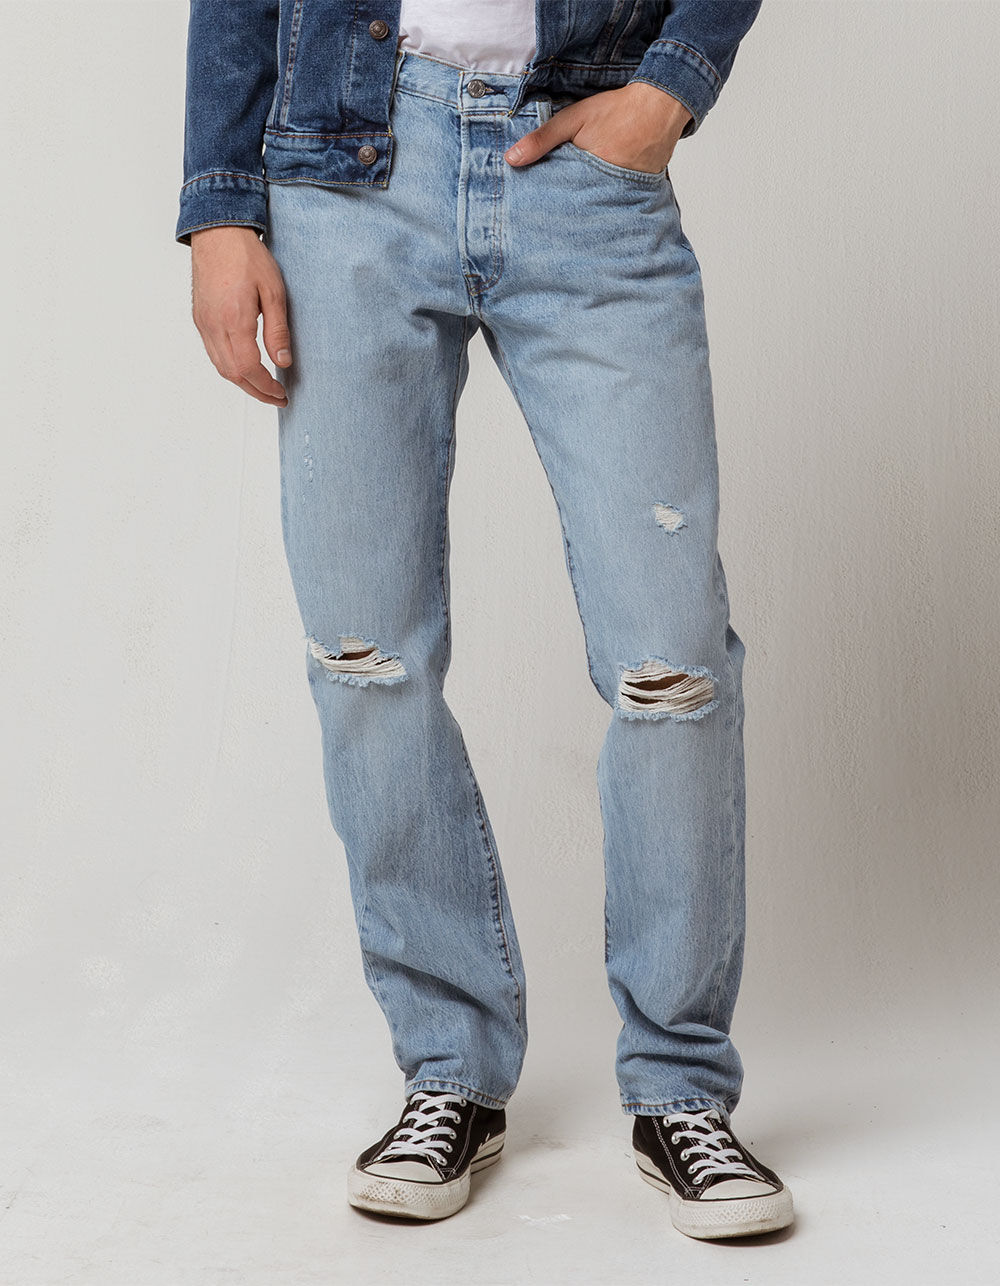 LEVI'S 501 Hector War Ripped Jeans